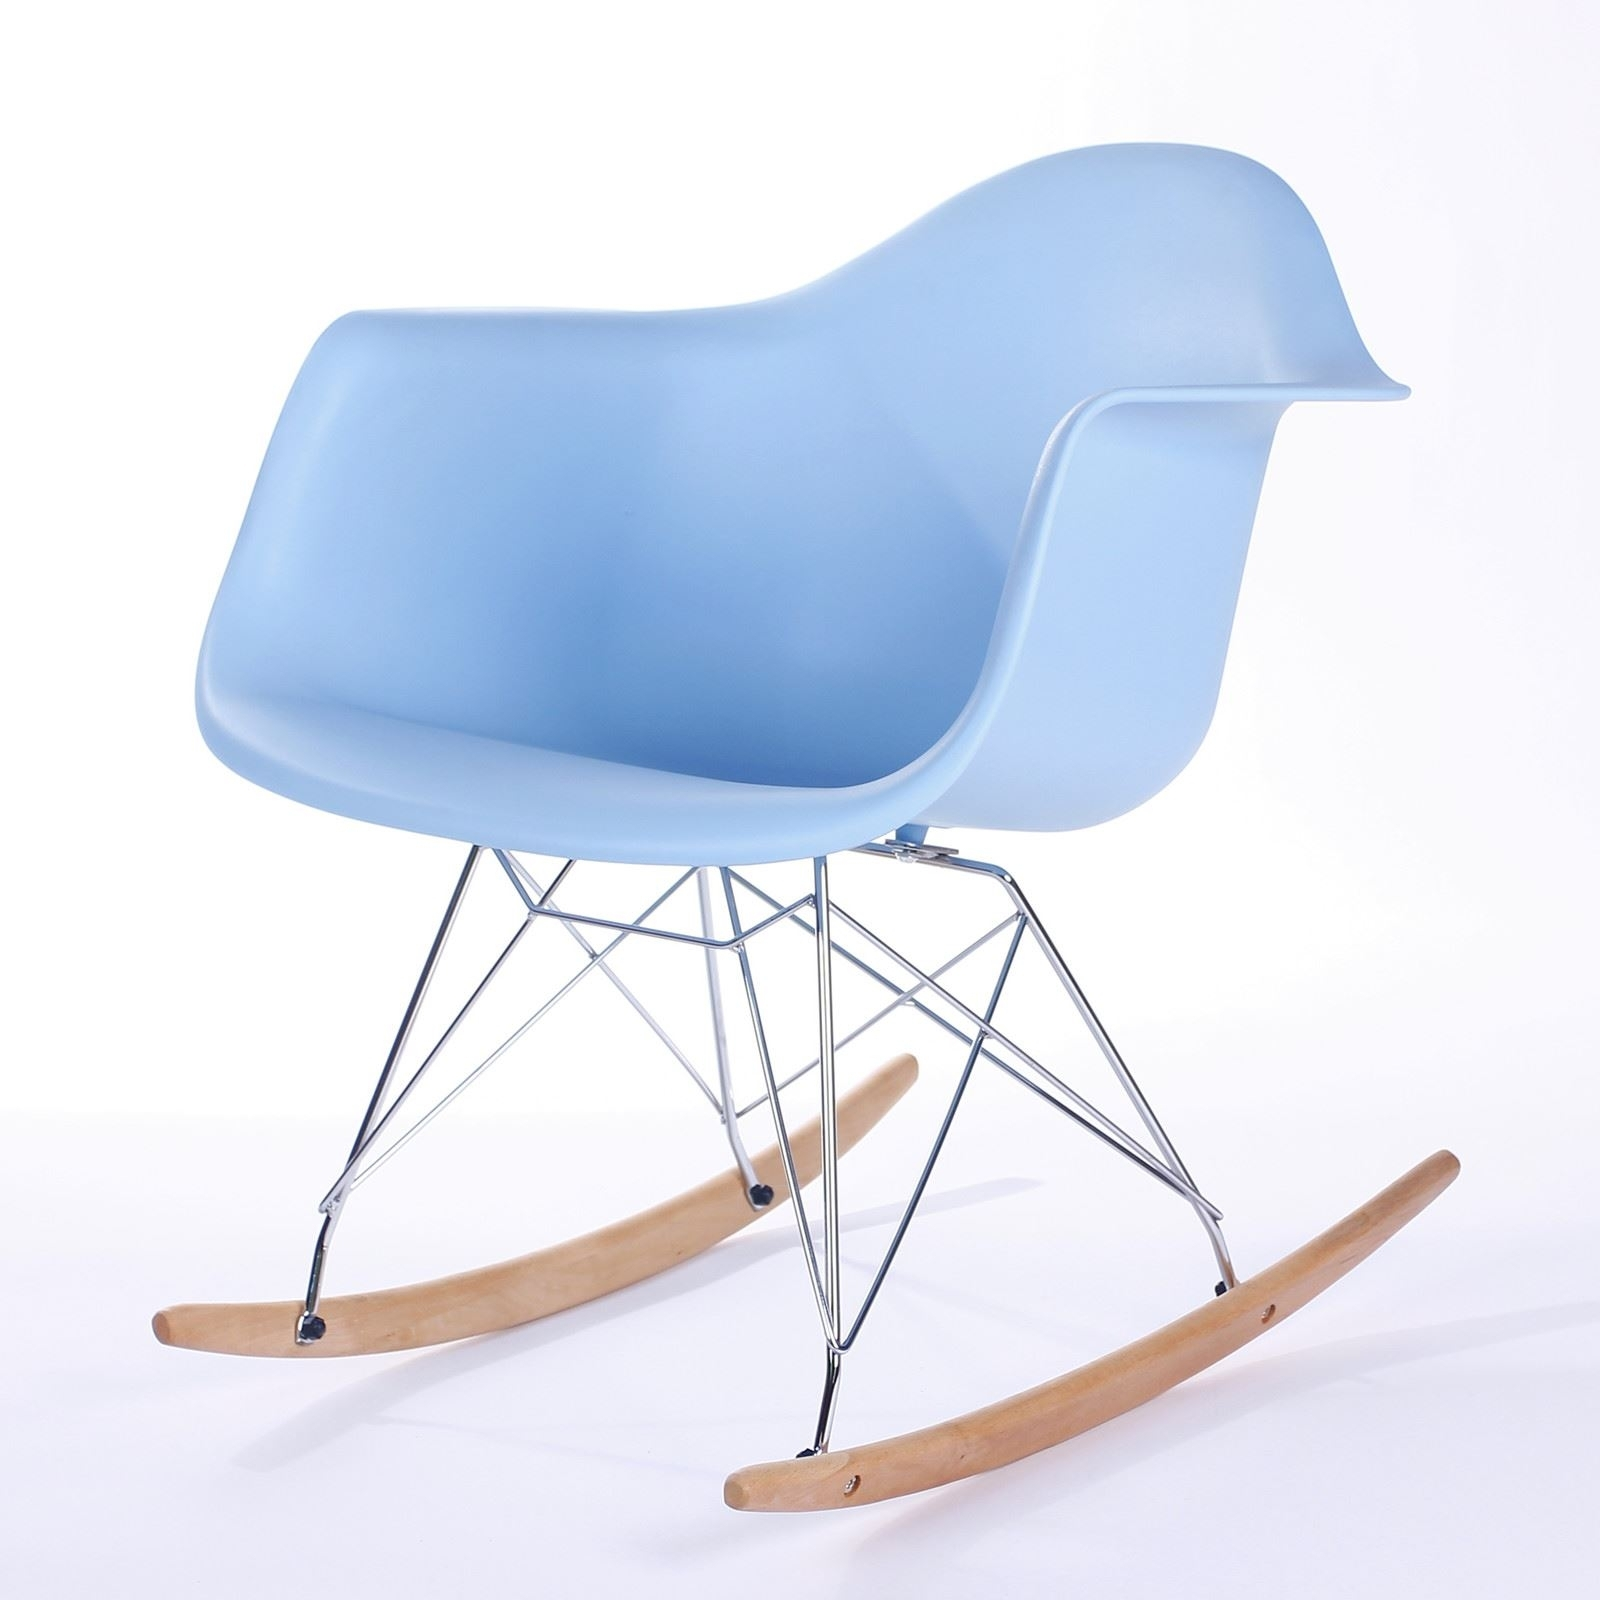 Retro Rar Rocking Chair Dining Chairs Modern Contemporary | Ebay Throughout Retro Rocking Chairs (View 9 of 15)